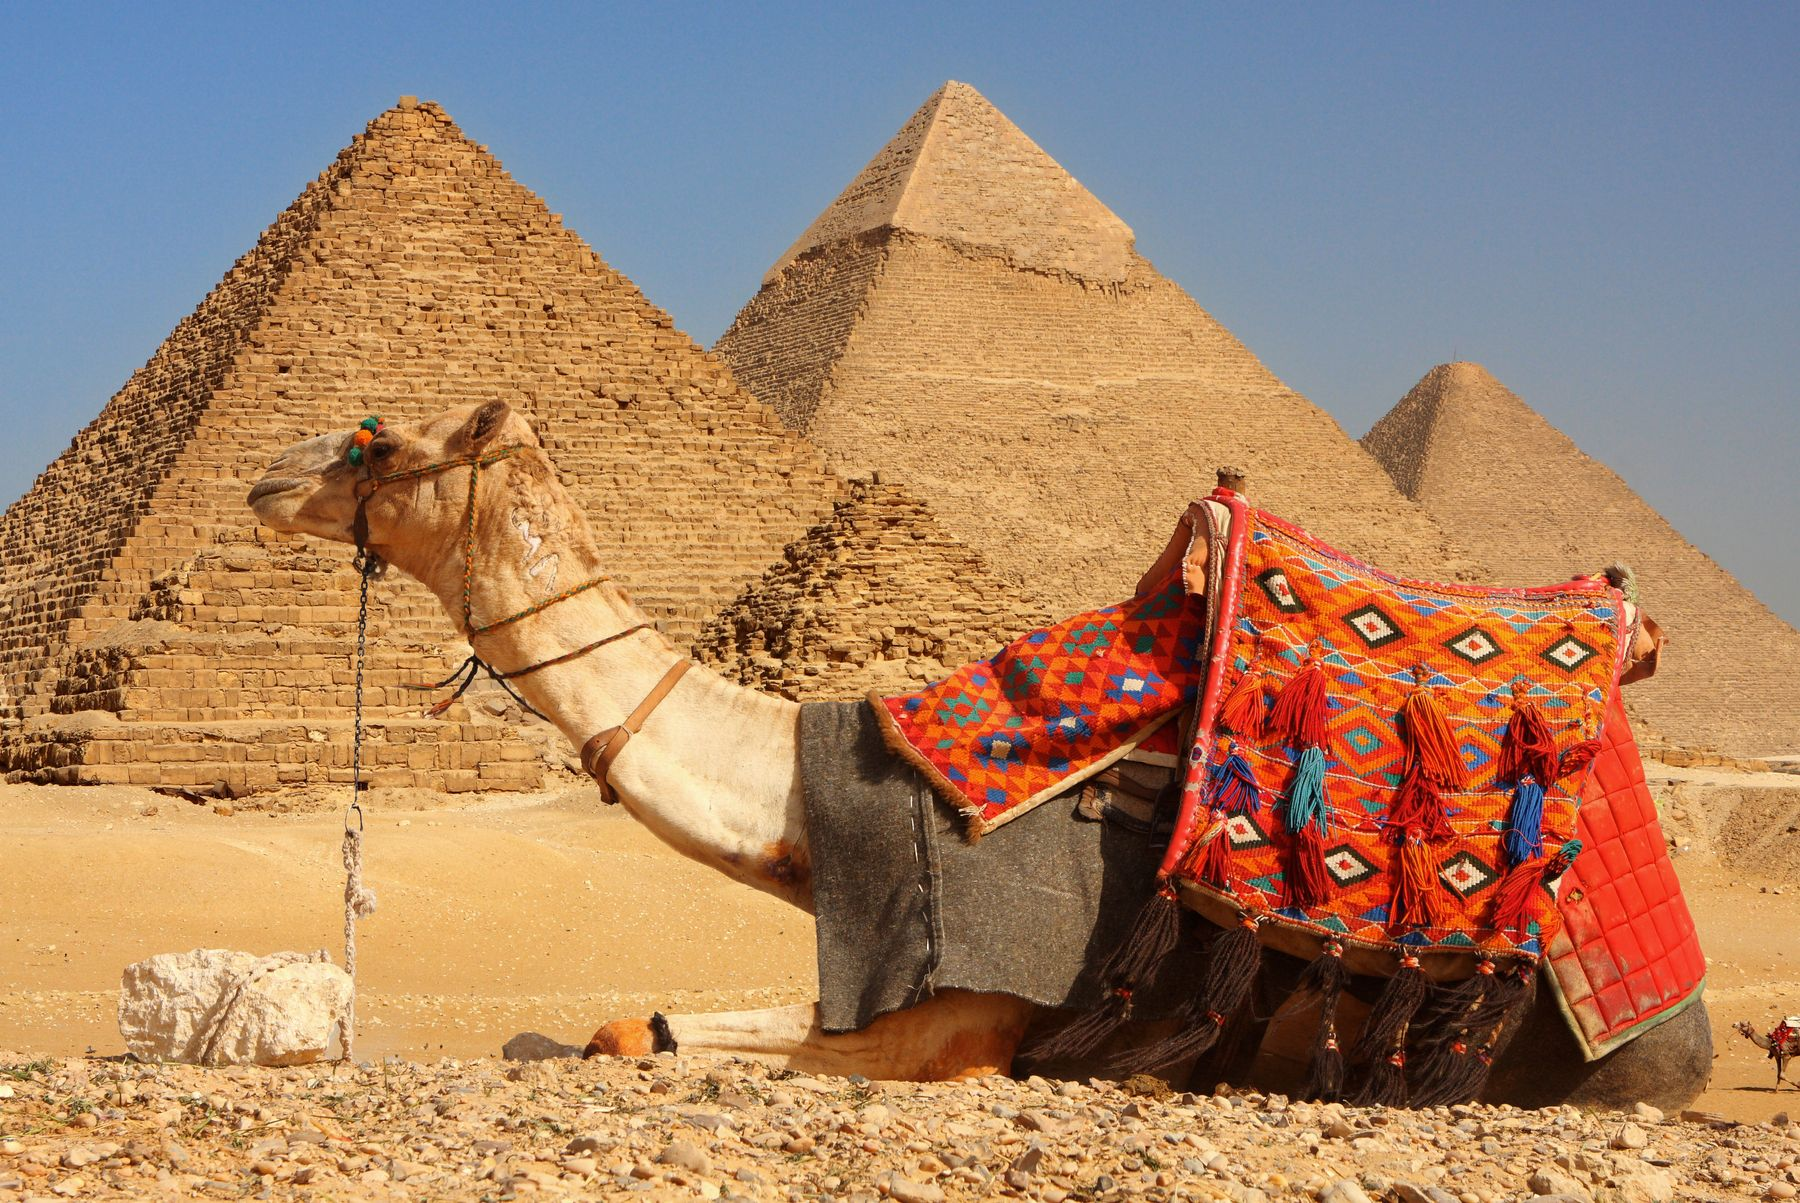 camel laying in front of pyramids on adventure trip